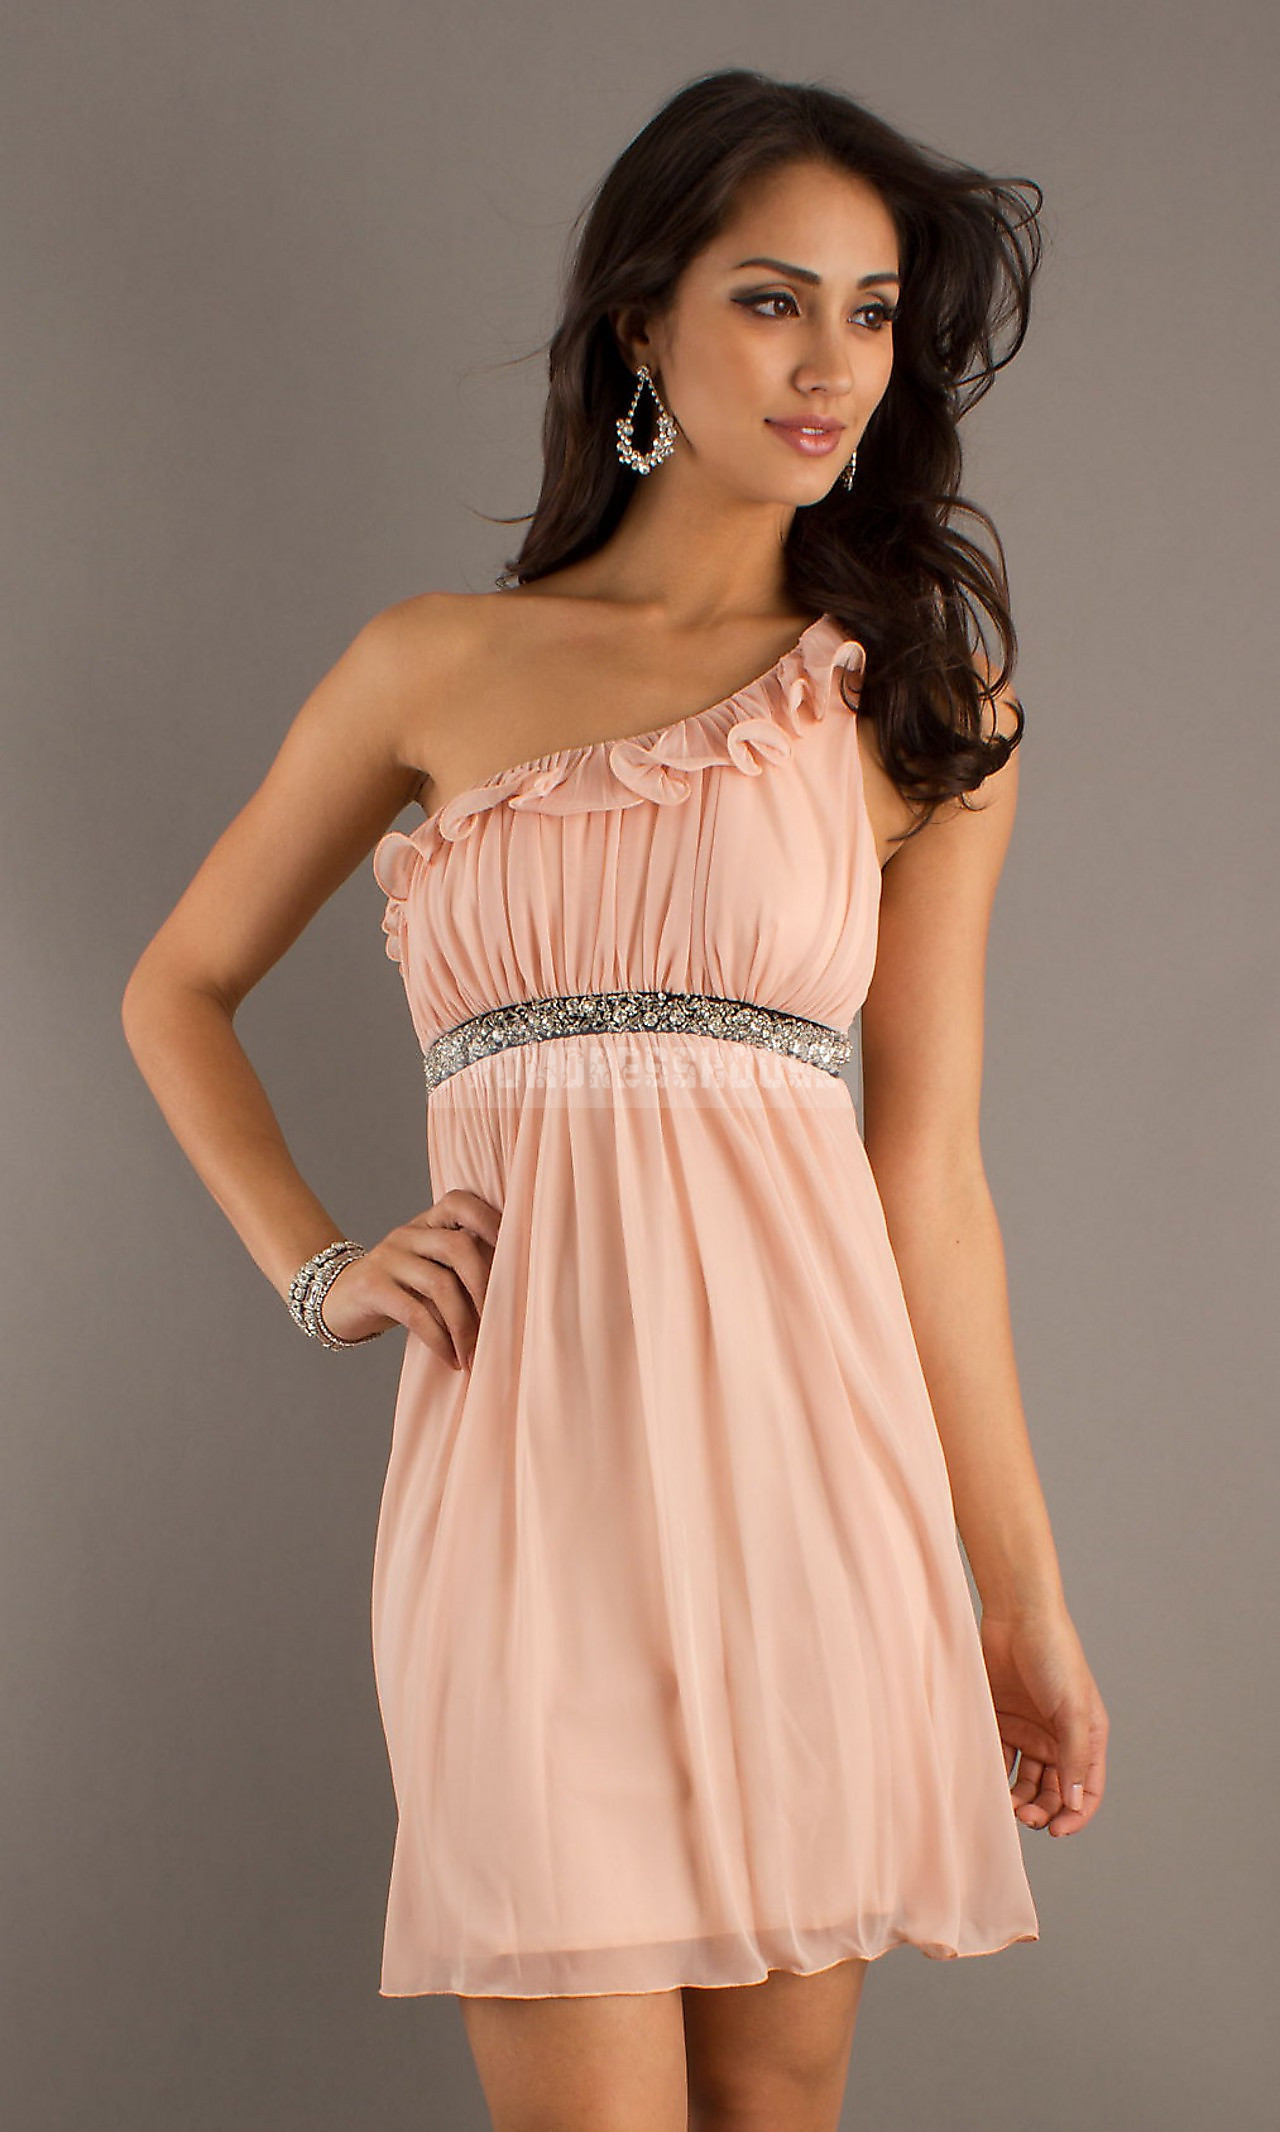 A-line Short Length One Shoulder Chiffon Ruffles Pink Prom Dress - Promdresshouse.com